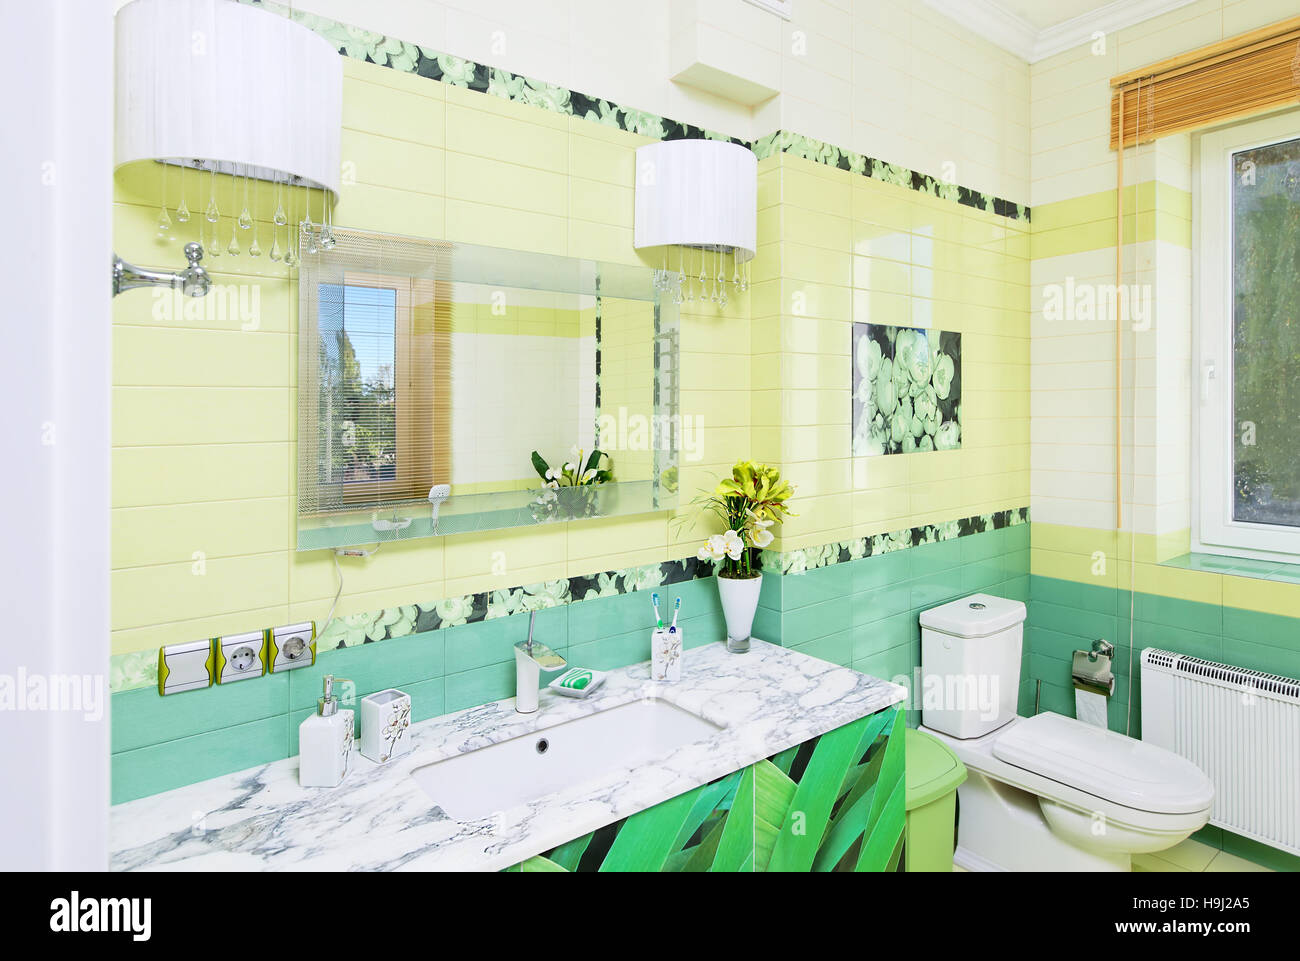 Bathroom Cabinet Stock Photos & Bathroom Cabinet Stock Images - Alamy